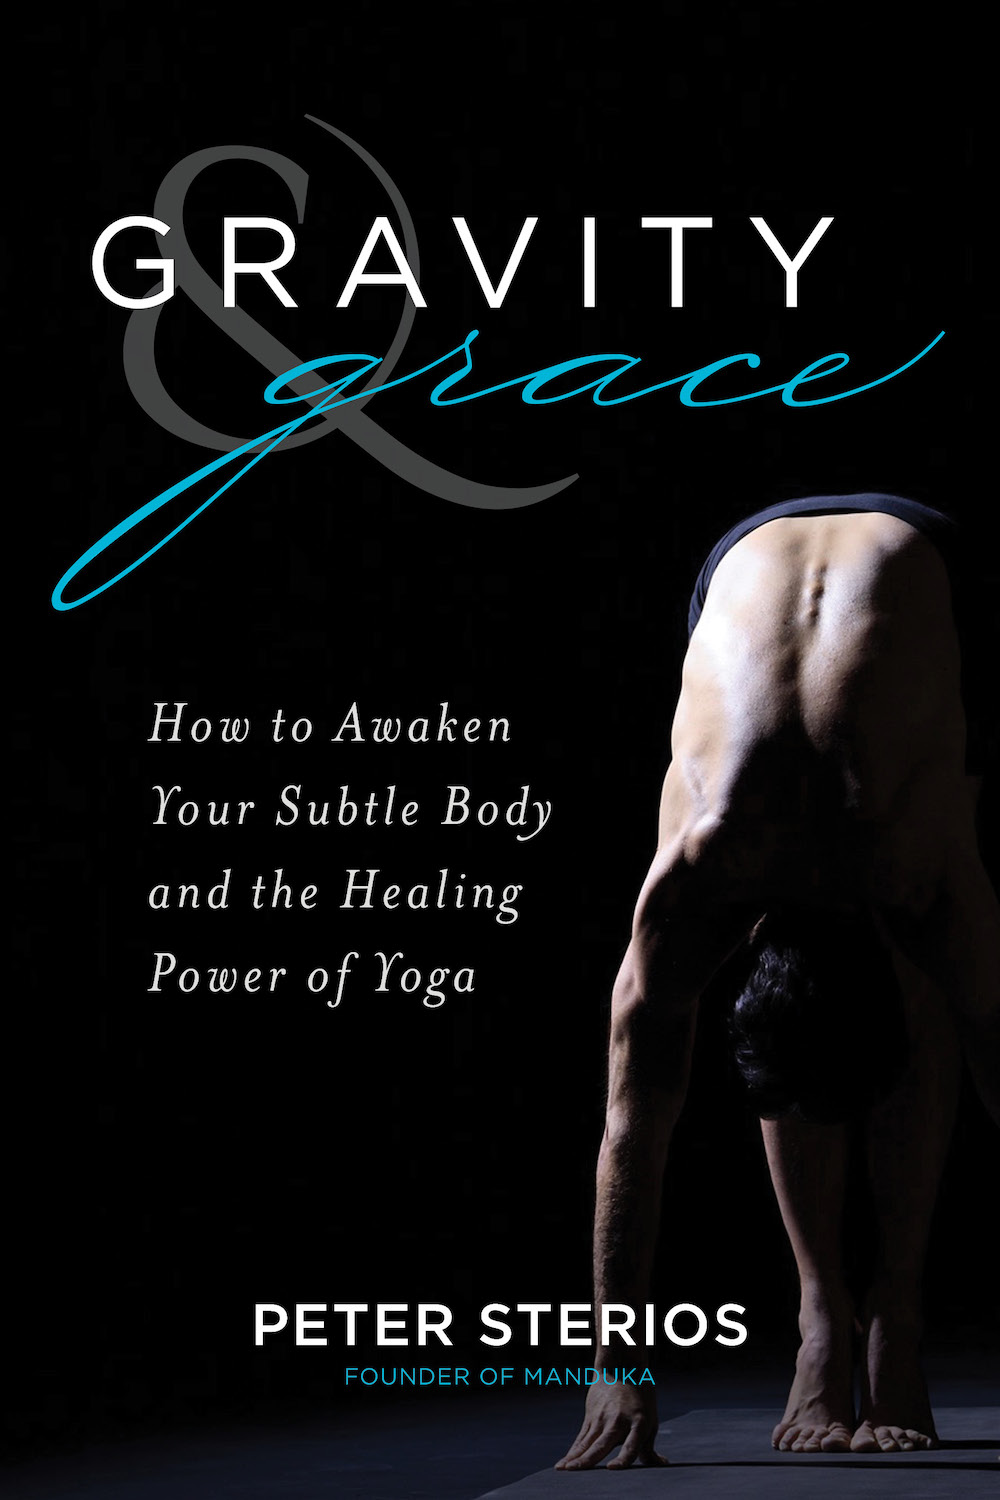 Gravity & Grace: How to Awaken Subtle Body and the Healing Power of Yoga. Book by Peter Sterios